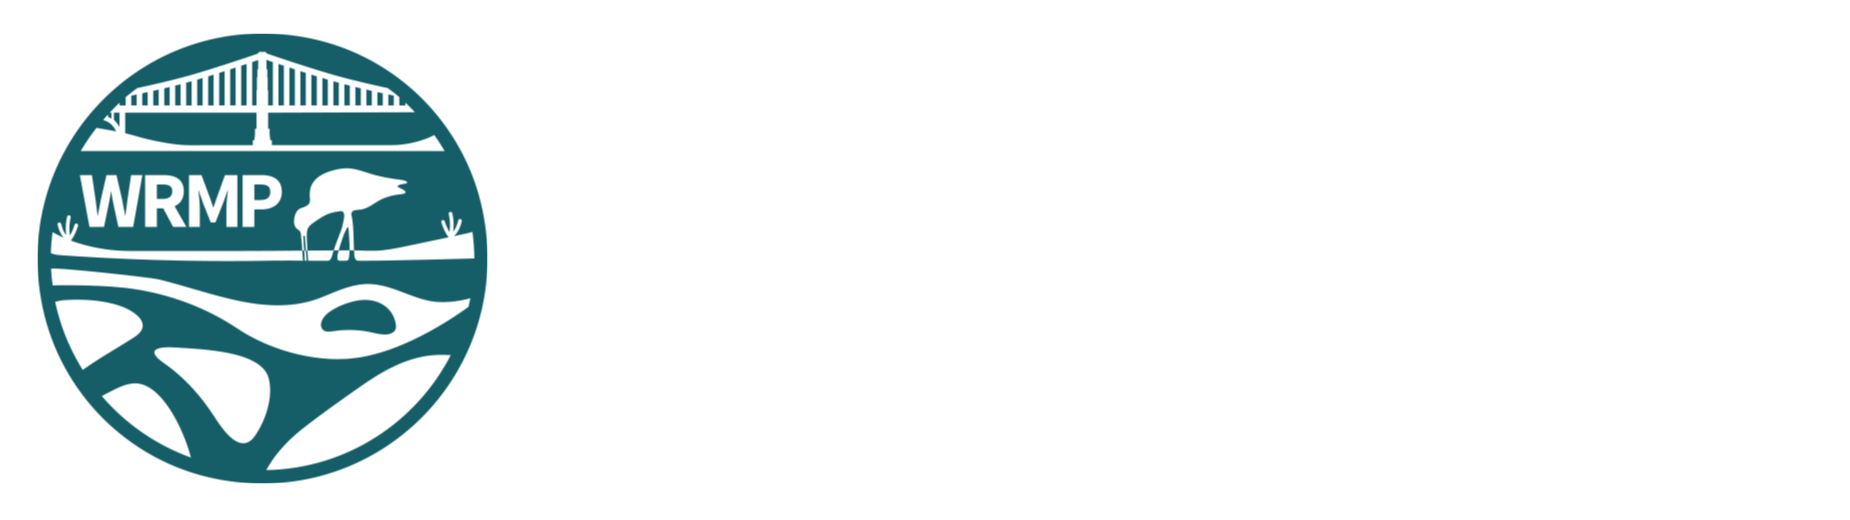 Wetlands Regional Monitoring Program